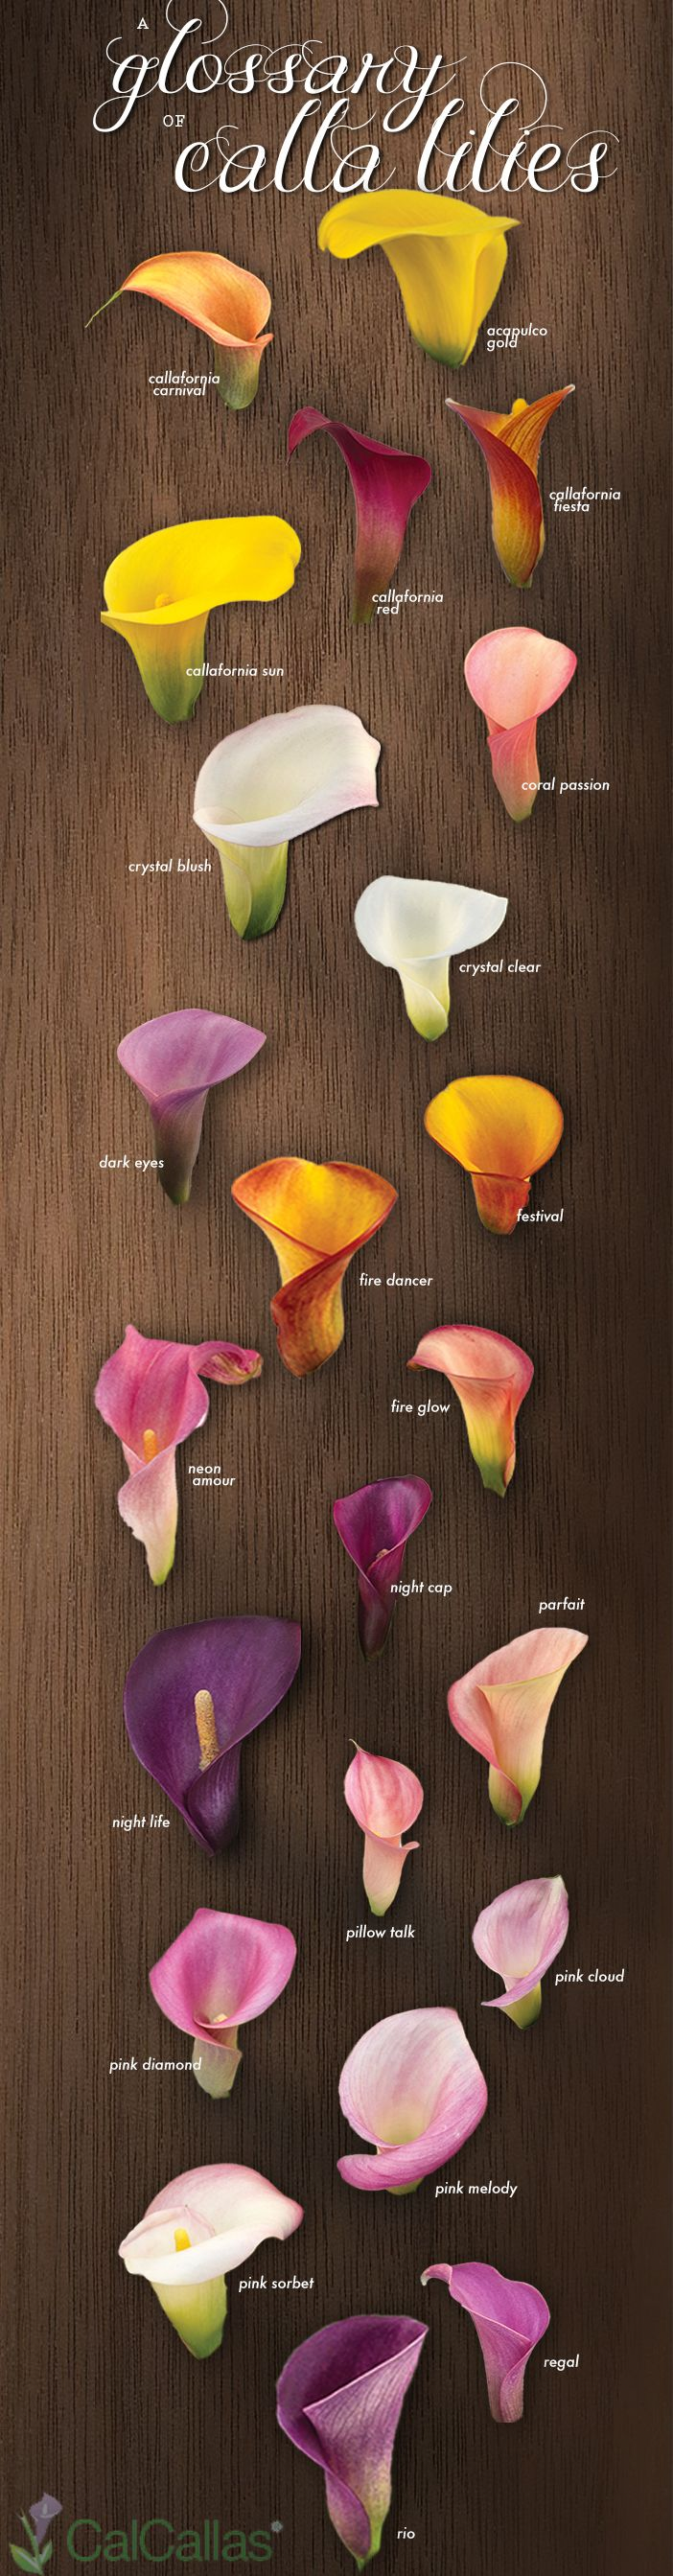 ~~A Glossary of Colored Calla Lilies - Mini Calla Lily Colors | CalCallas~~